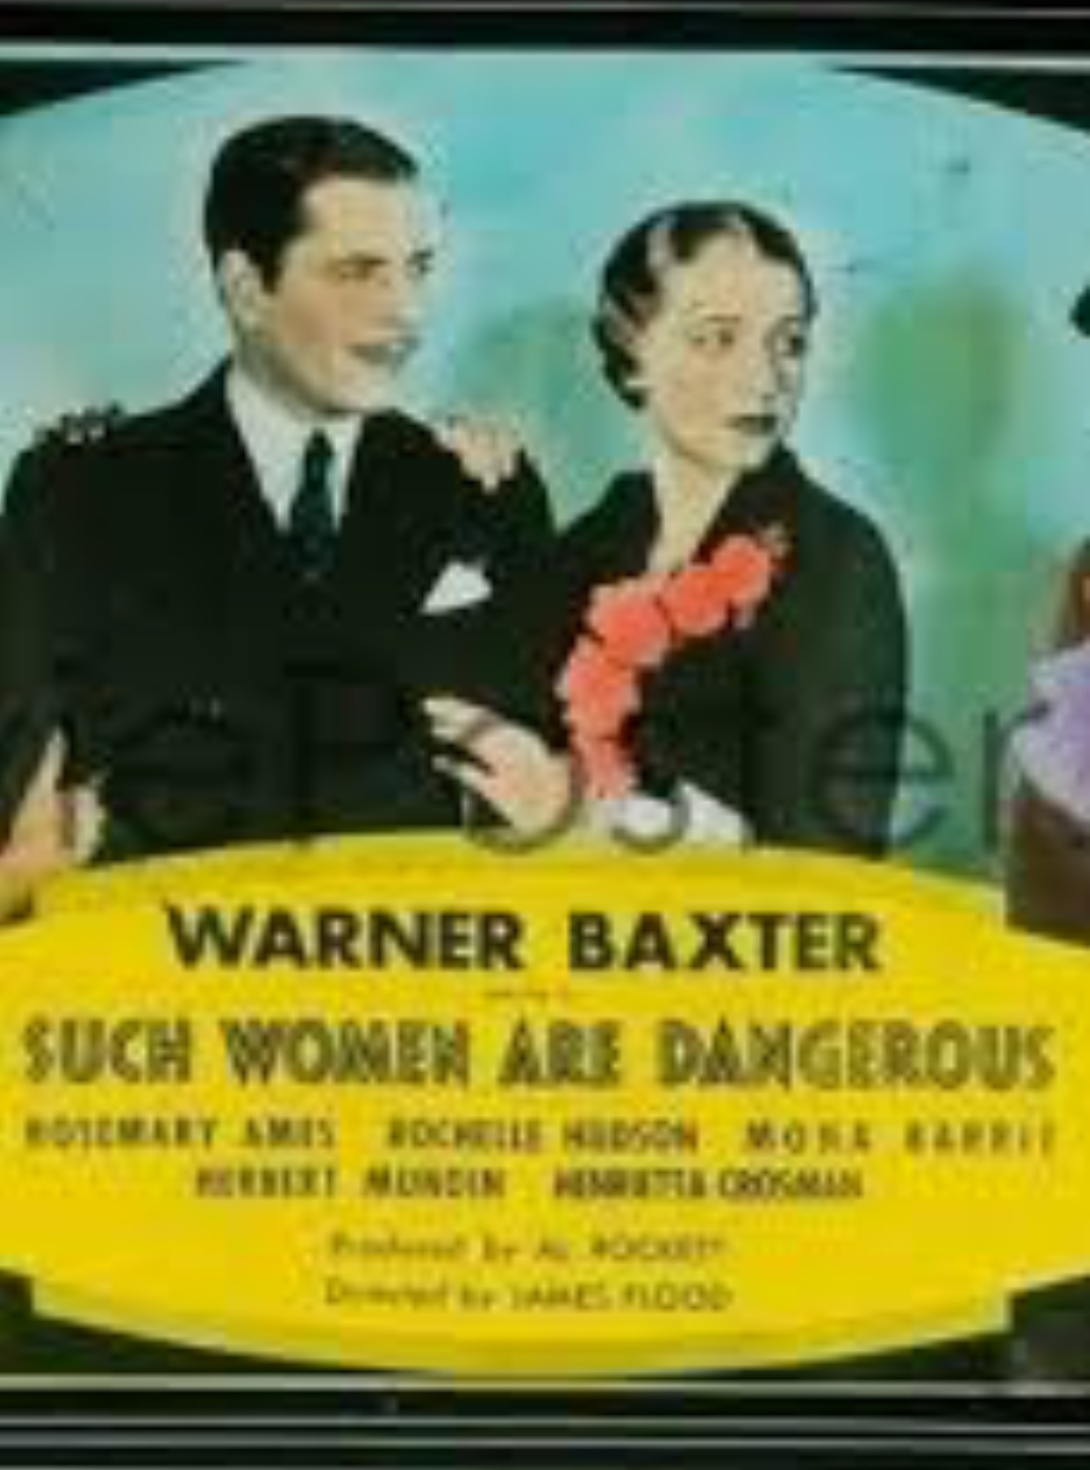 Warner Baxter and Rochelle Hudson in Such Women Are Dangerous (1934)